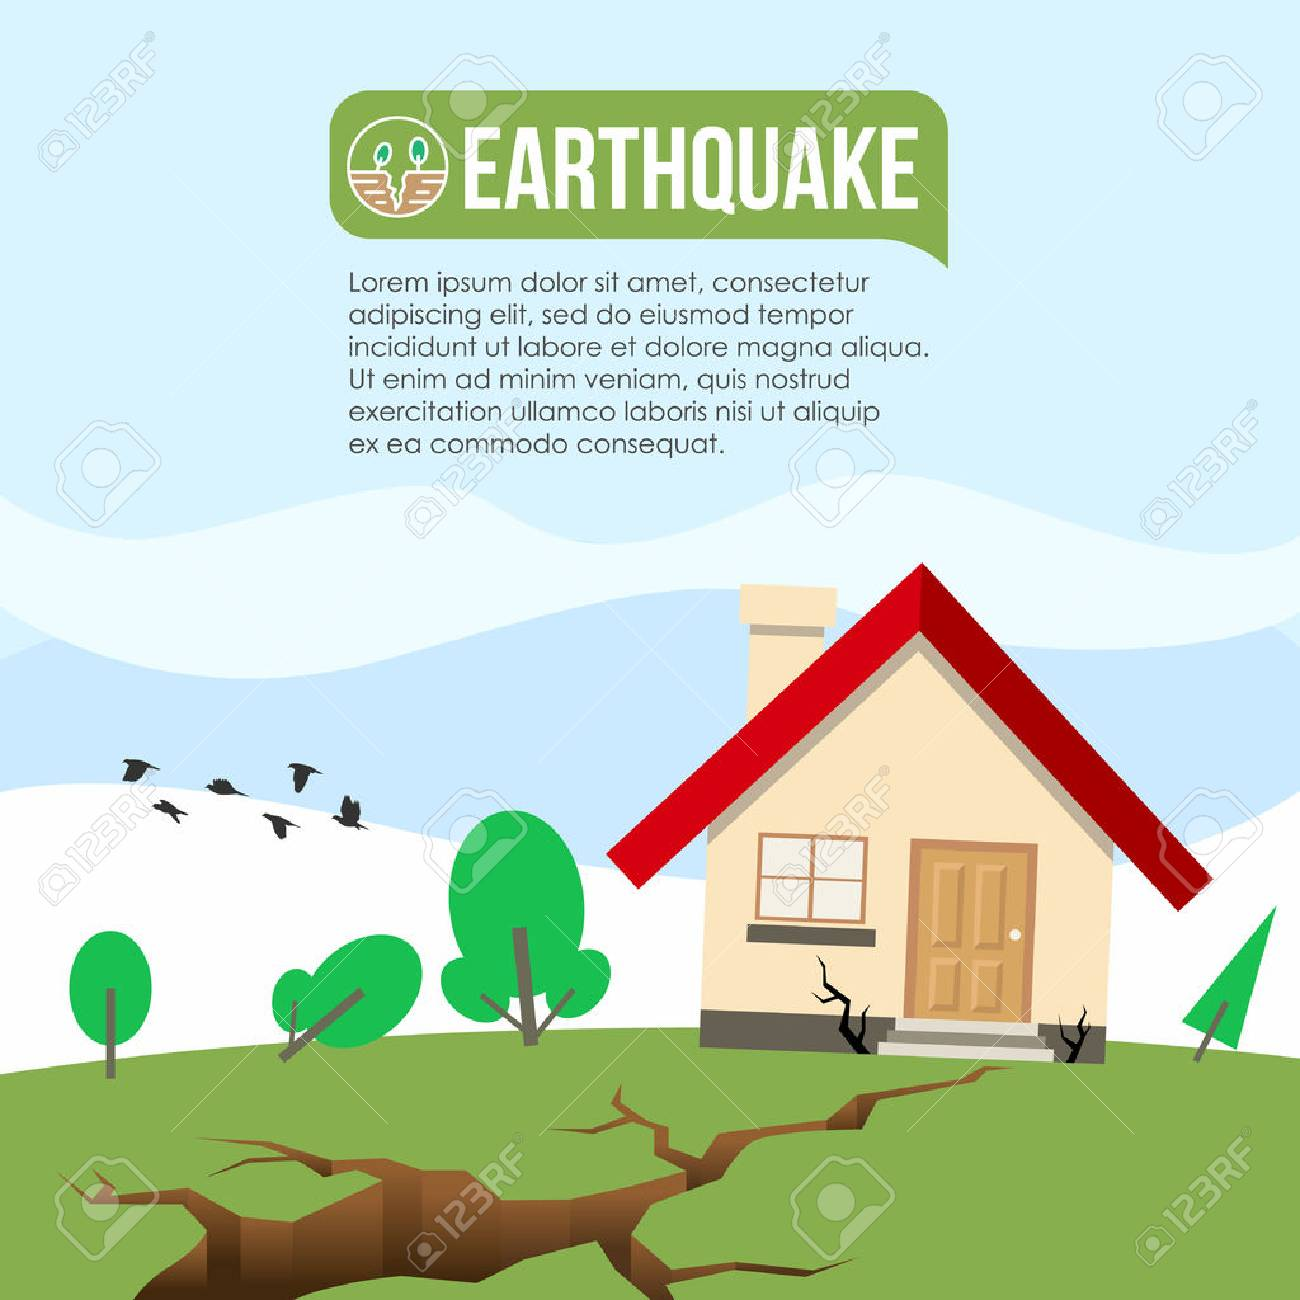 Earthquake Disaster with Ground crevice and House crack vector design - 86261296